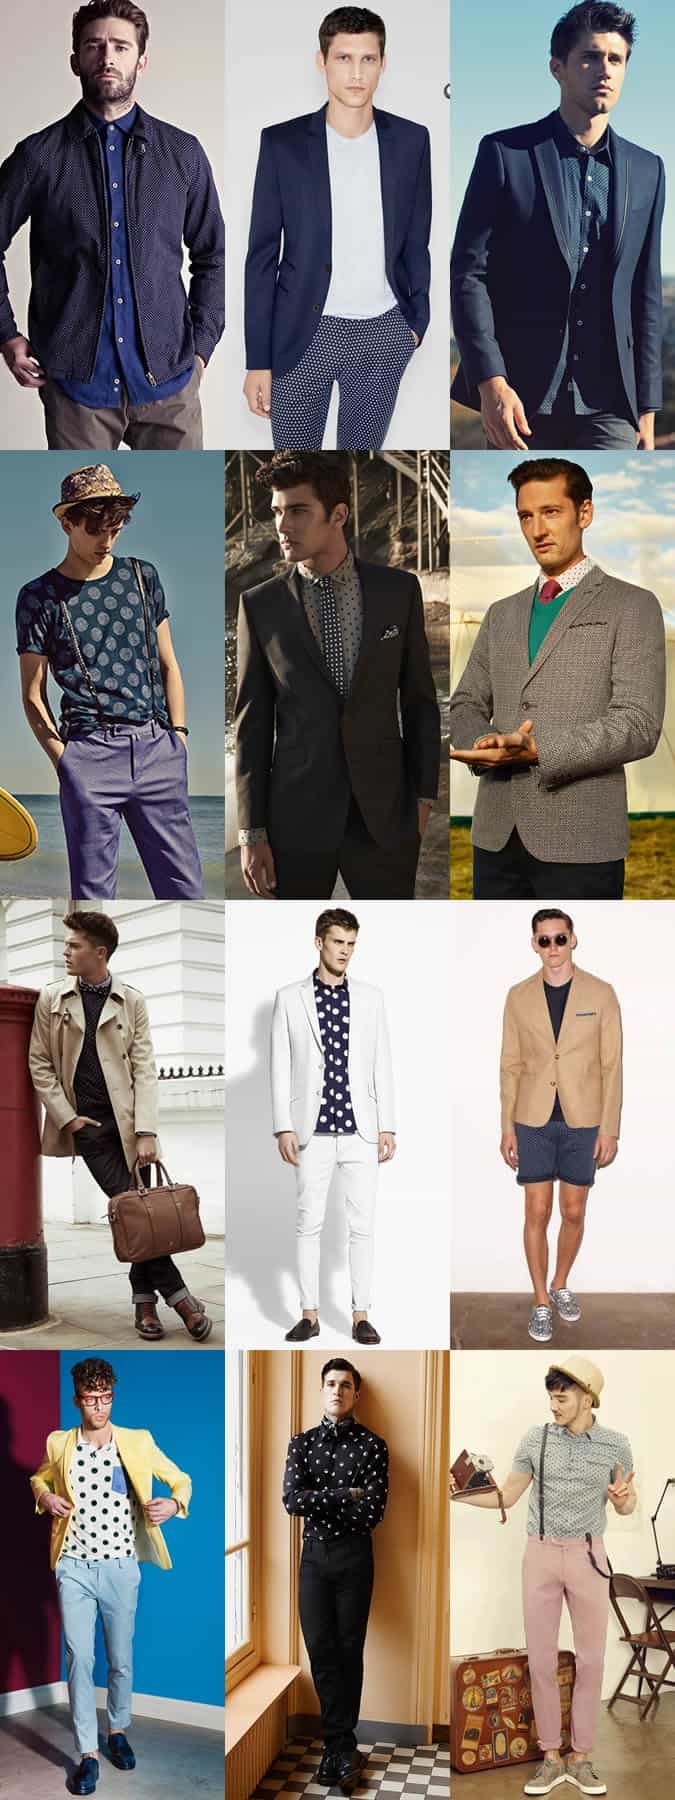 Men's Polka Dot Outfit Inspiration Lookbook